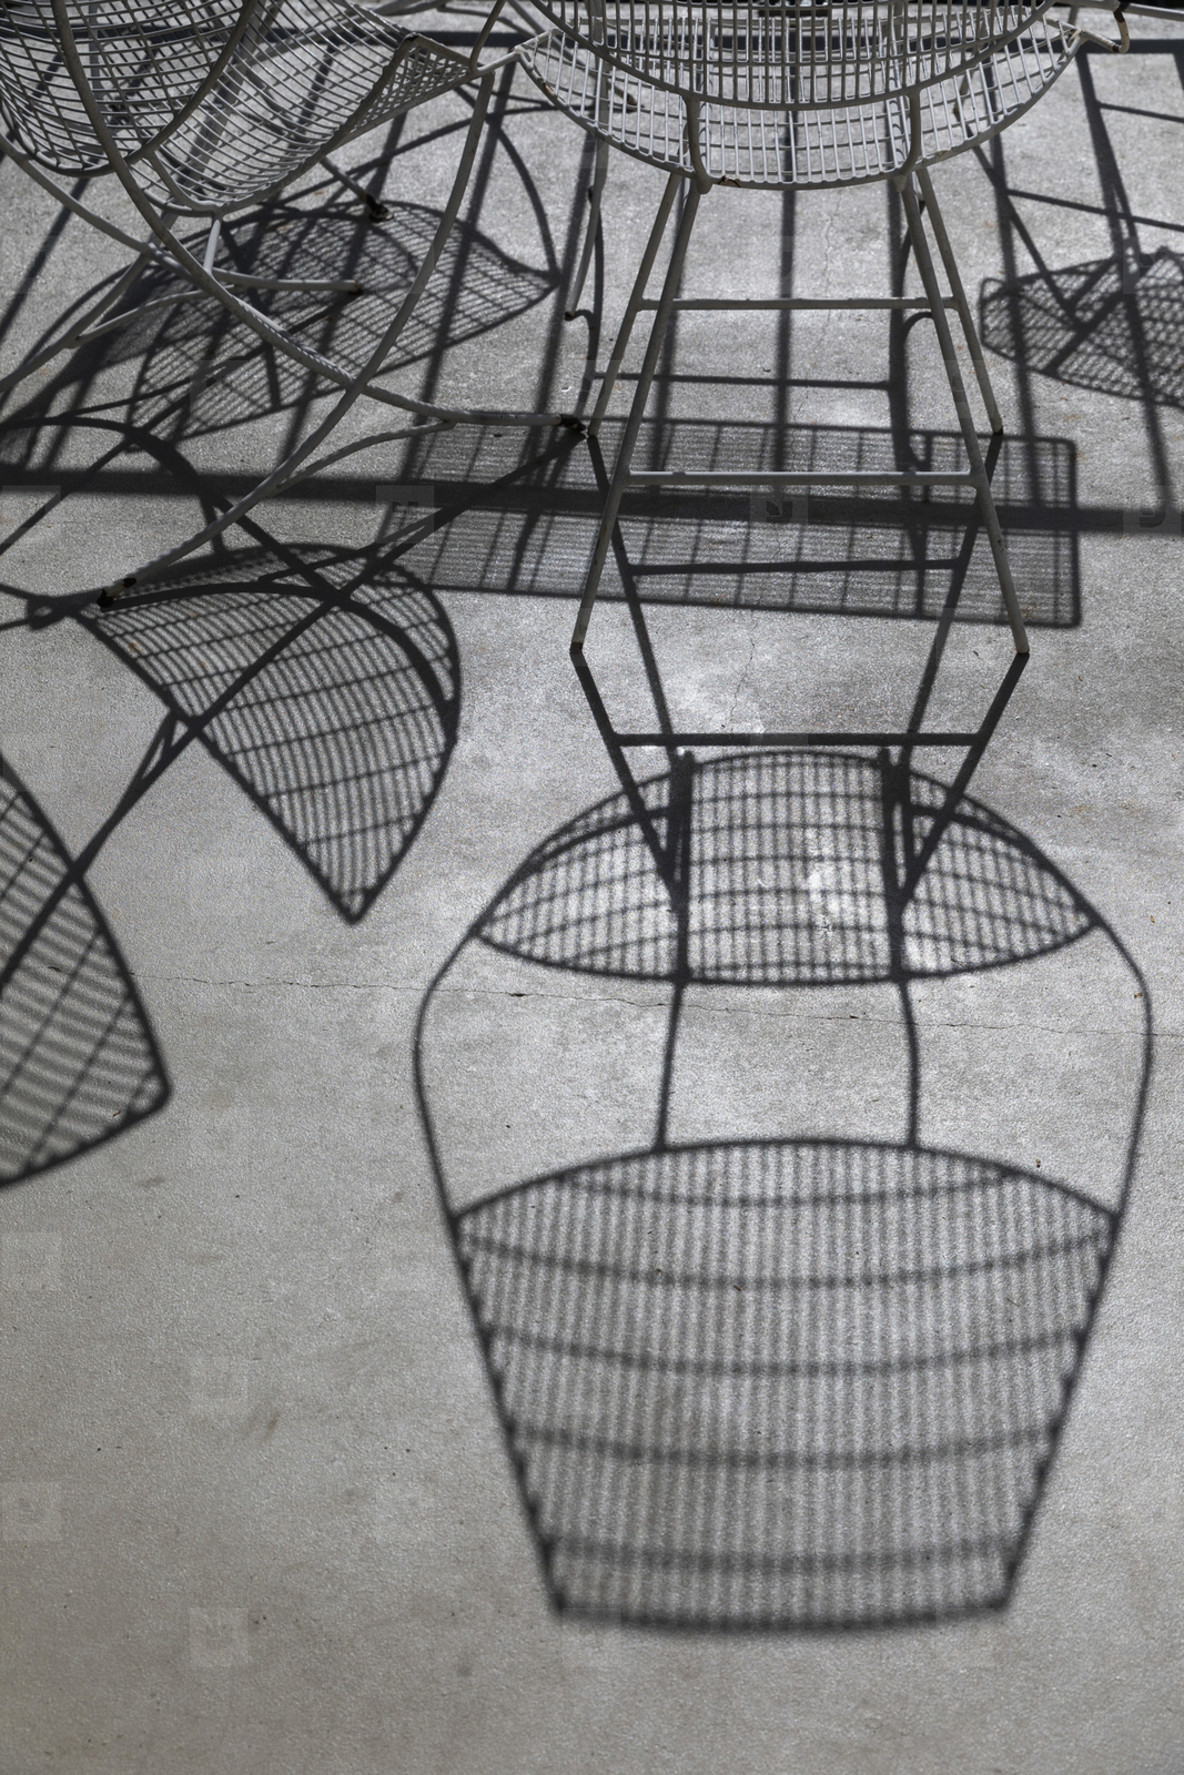 Shadows of iron chairs and table on sunny patio